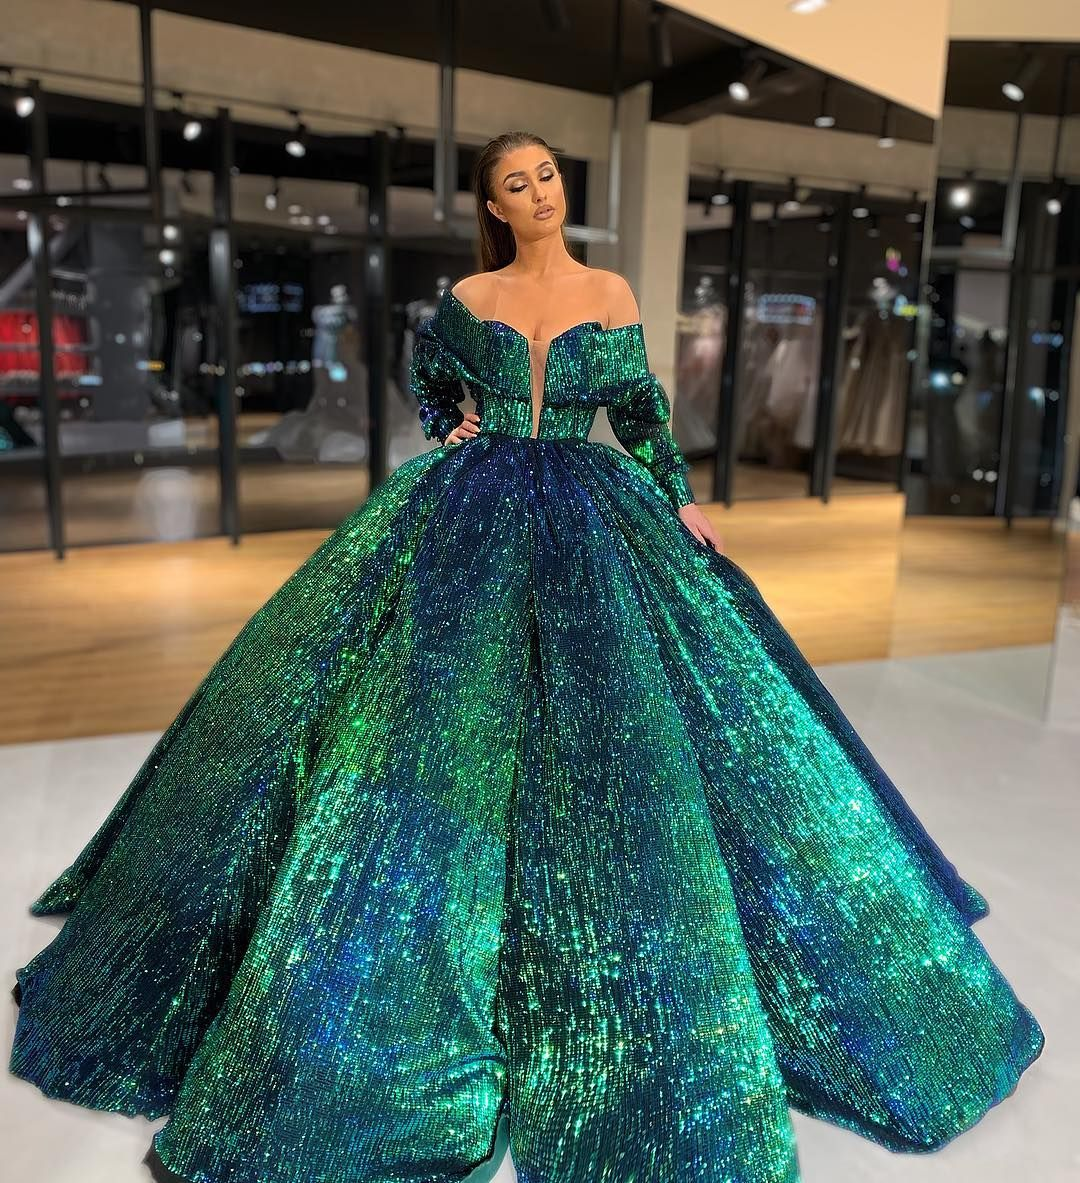 Lost In The Galaxy Hair Mua By Dafineneziri Walonefashiongroup Wfg Ball Dresses Gowns Dresses [ 1183 x 1080 Pixel ]